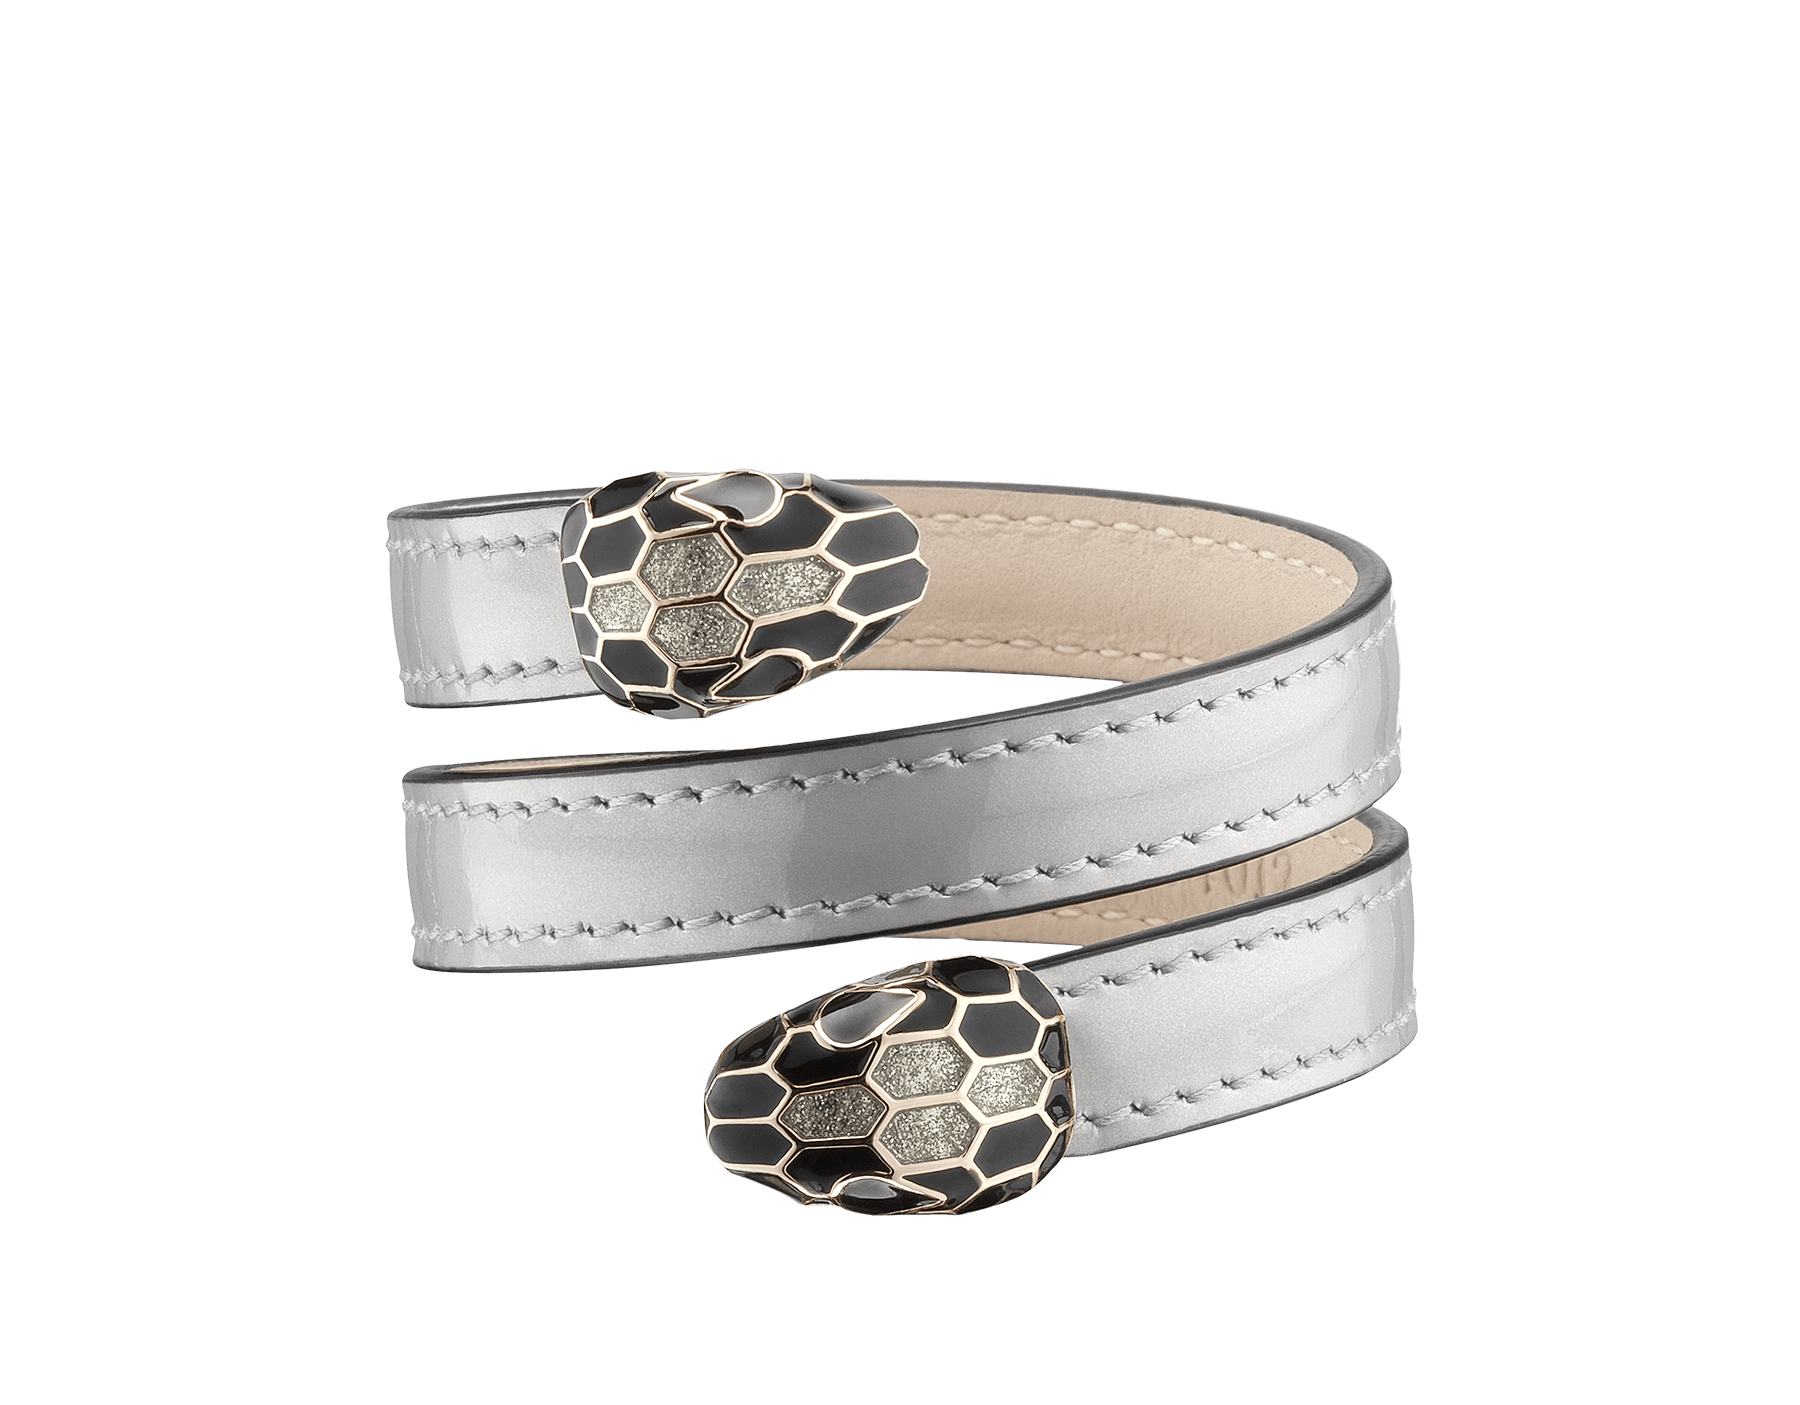 Multi-coiled rigid Cleopatra bracelet in silver brushed metallic calf leather with brass light gold plated hardware. Cleopatra-BMCL-S image 1